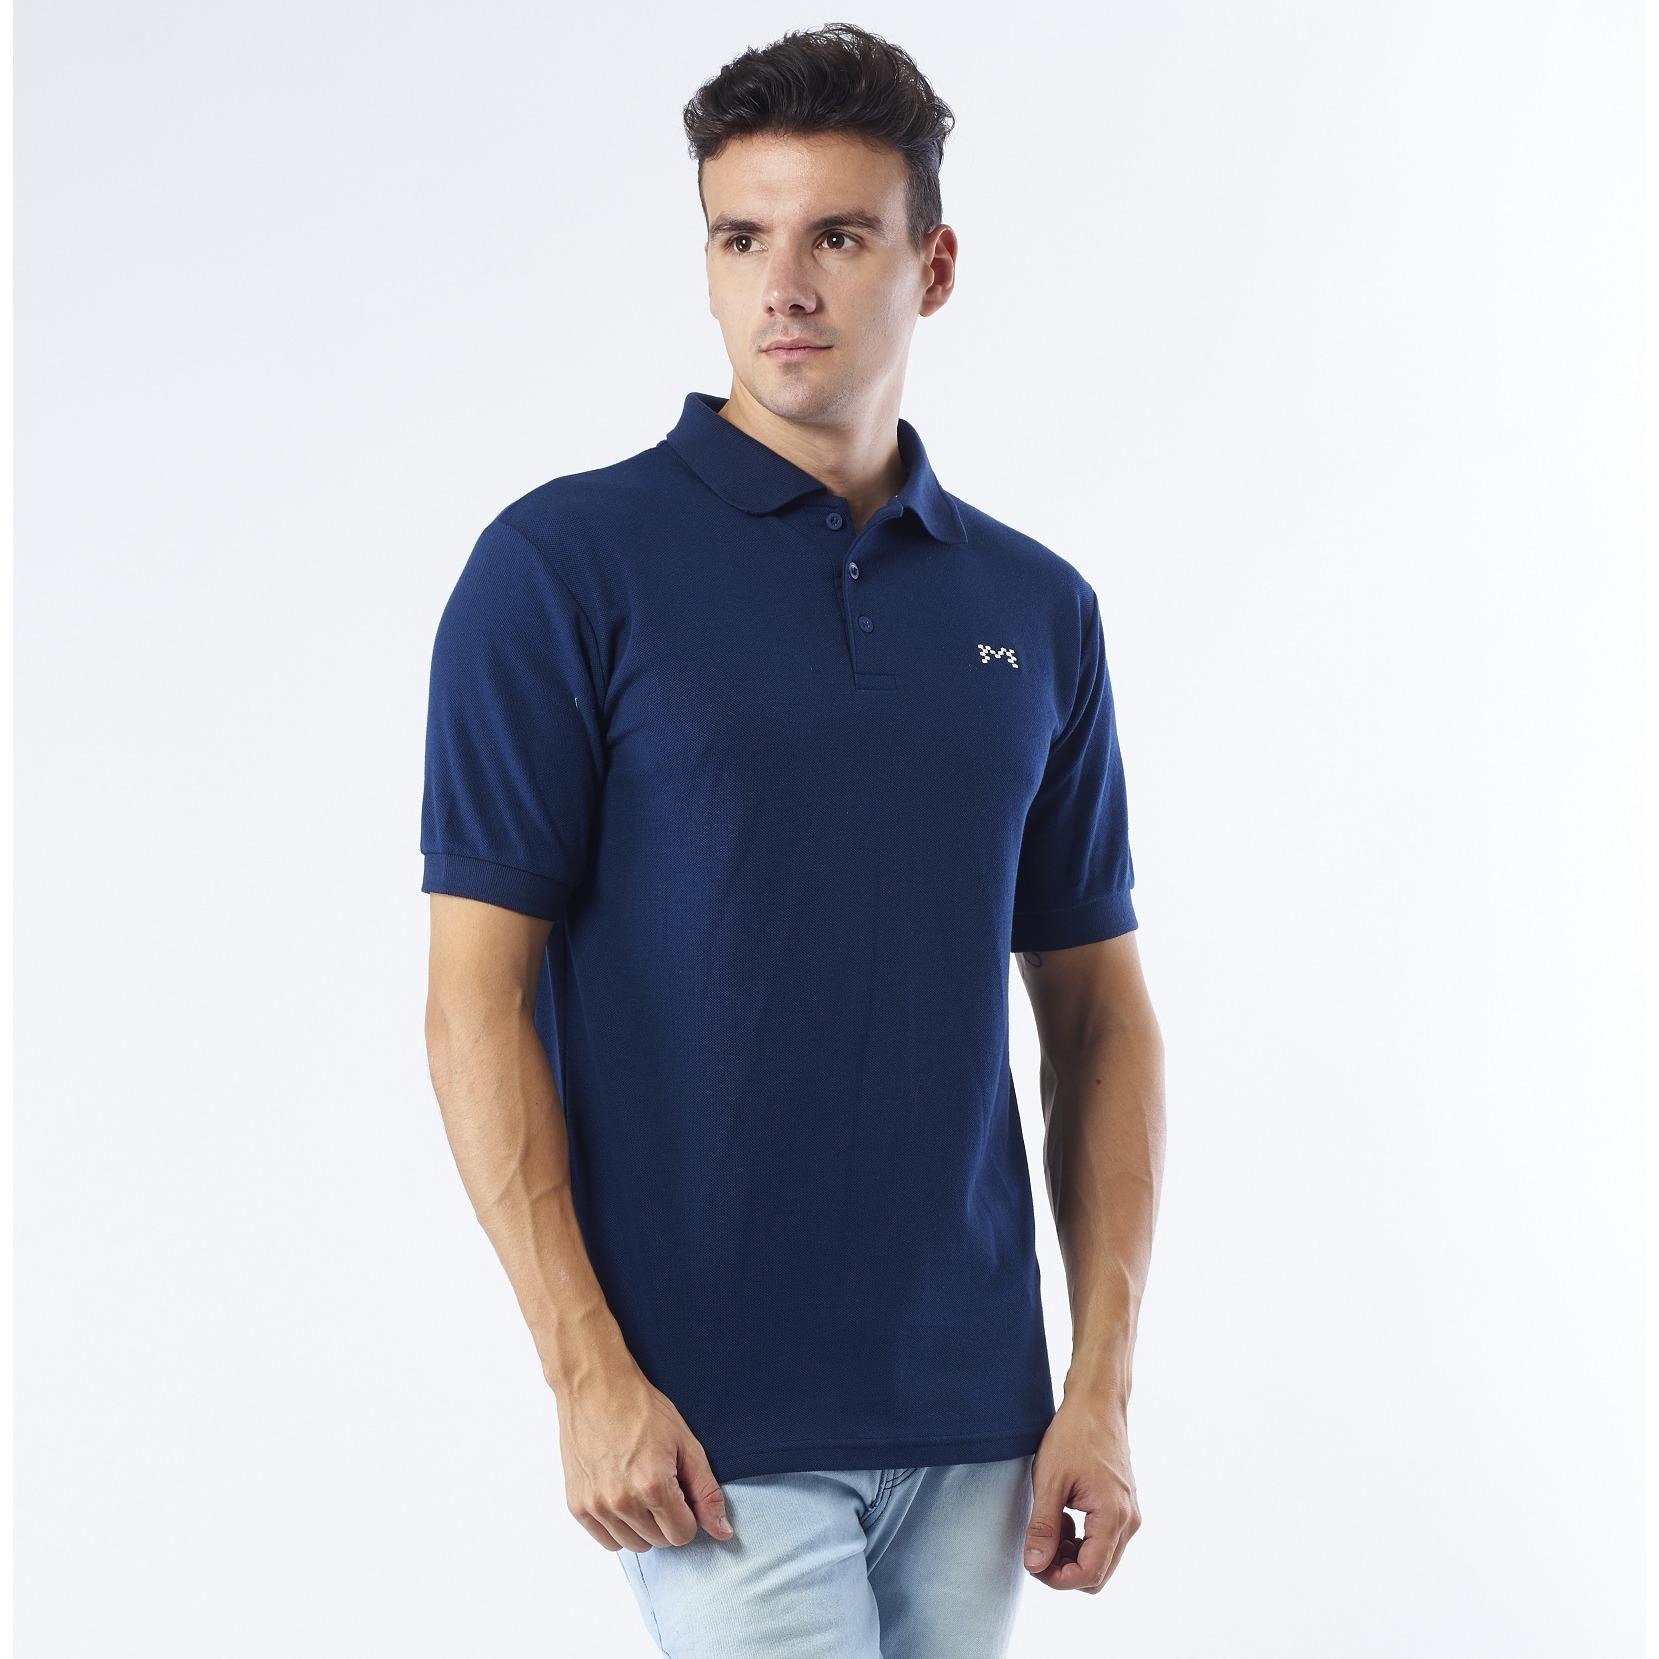 Tips Beli Mark Inc Polo Shirt Navy Blue Yang Bagus